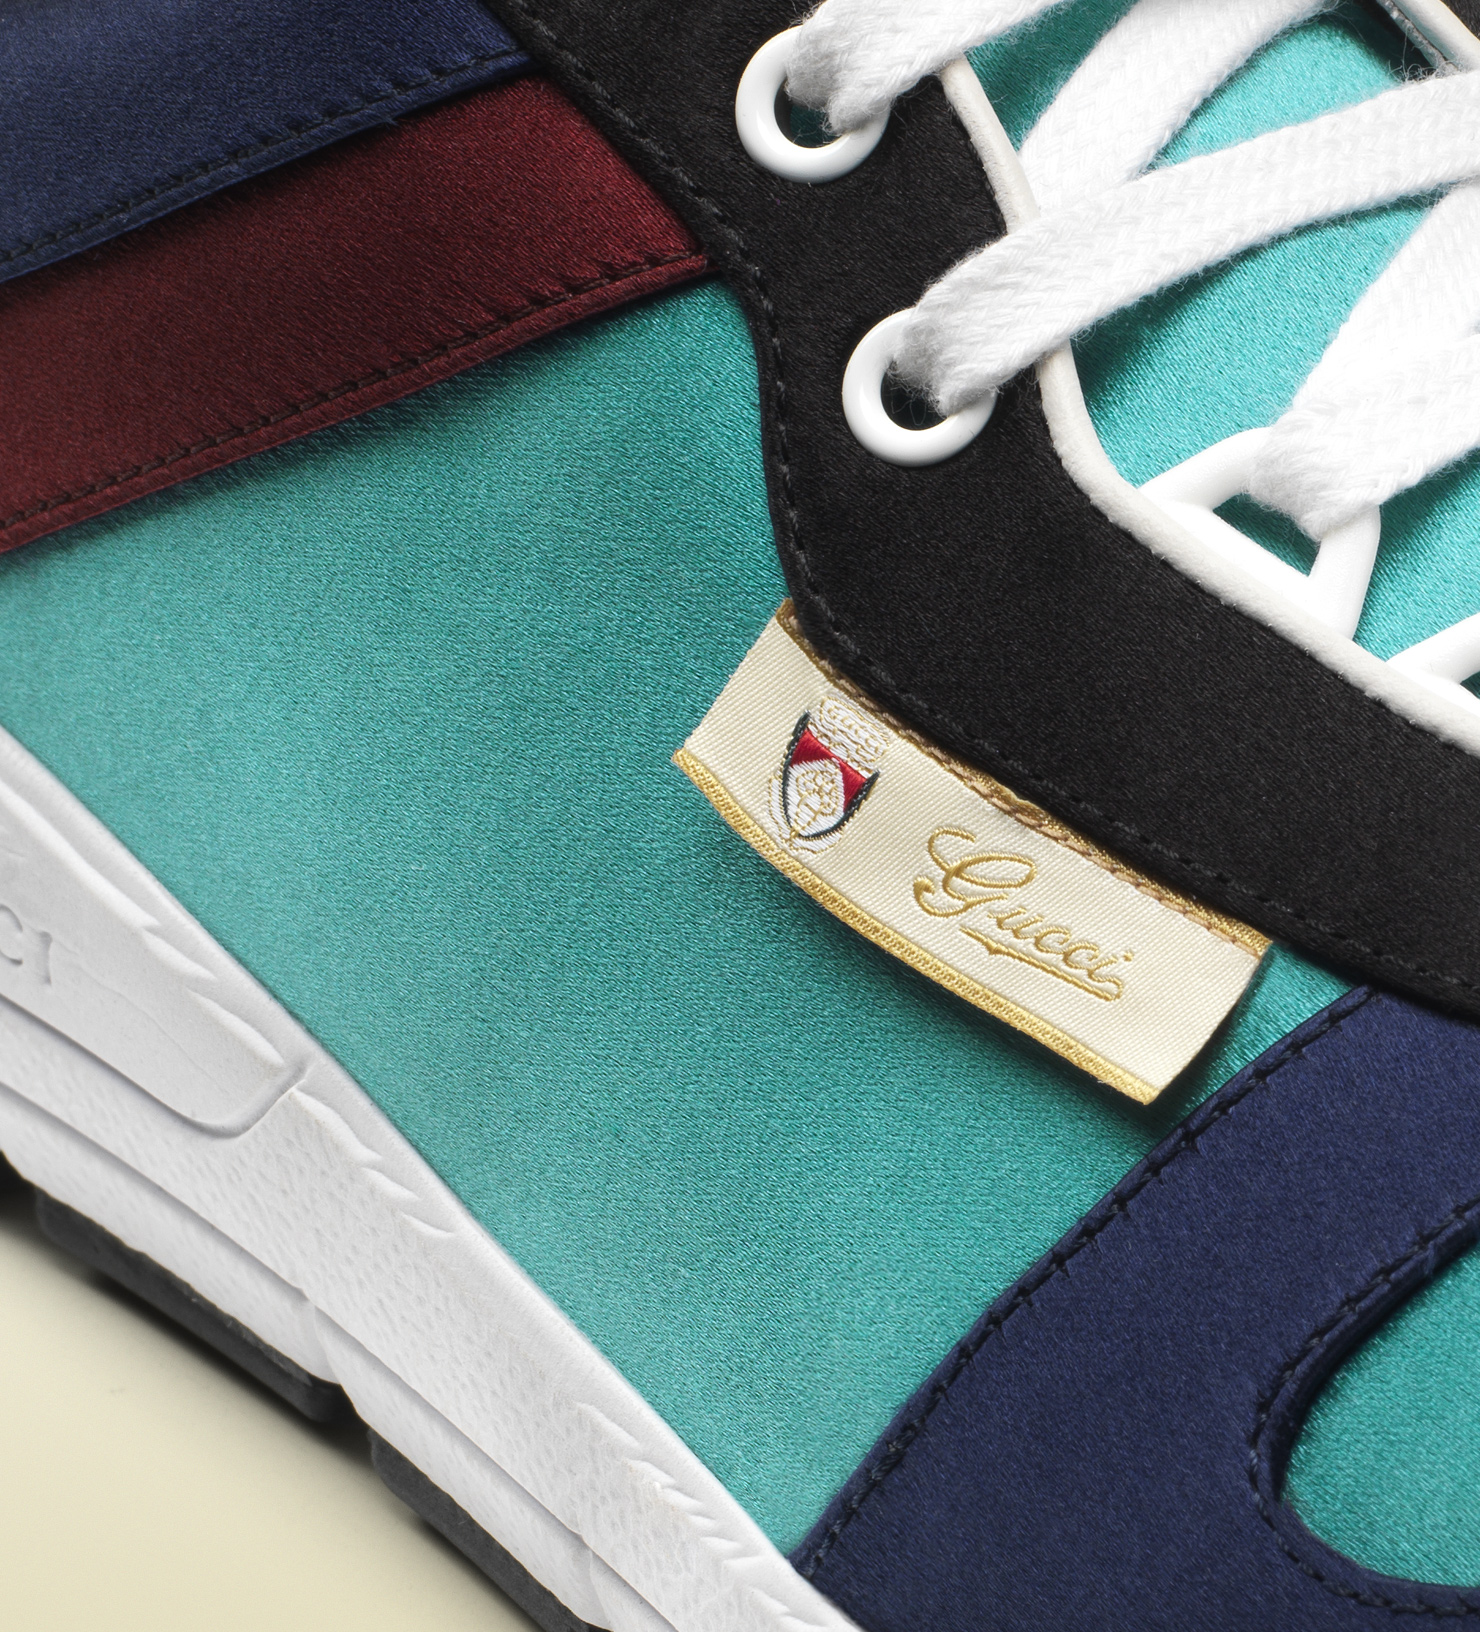 daf661fa9 Gucci Multicolor Satin Lace-up Sneaker in Blue for Men - Lyst